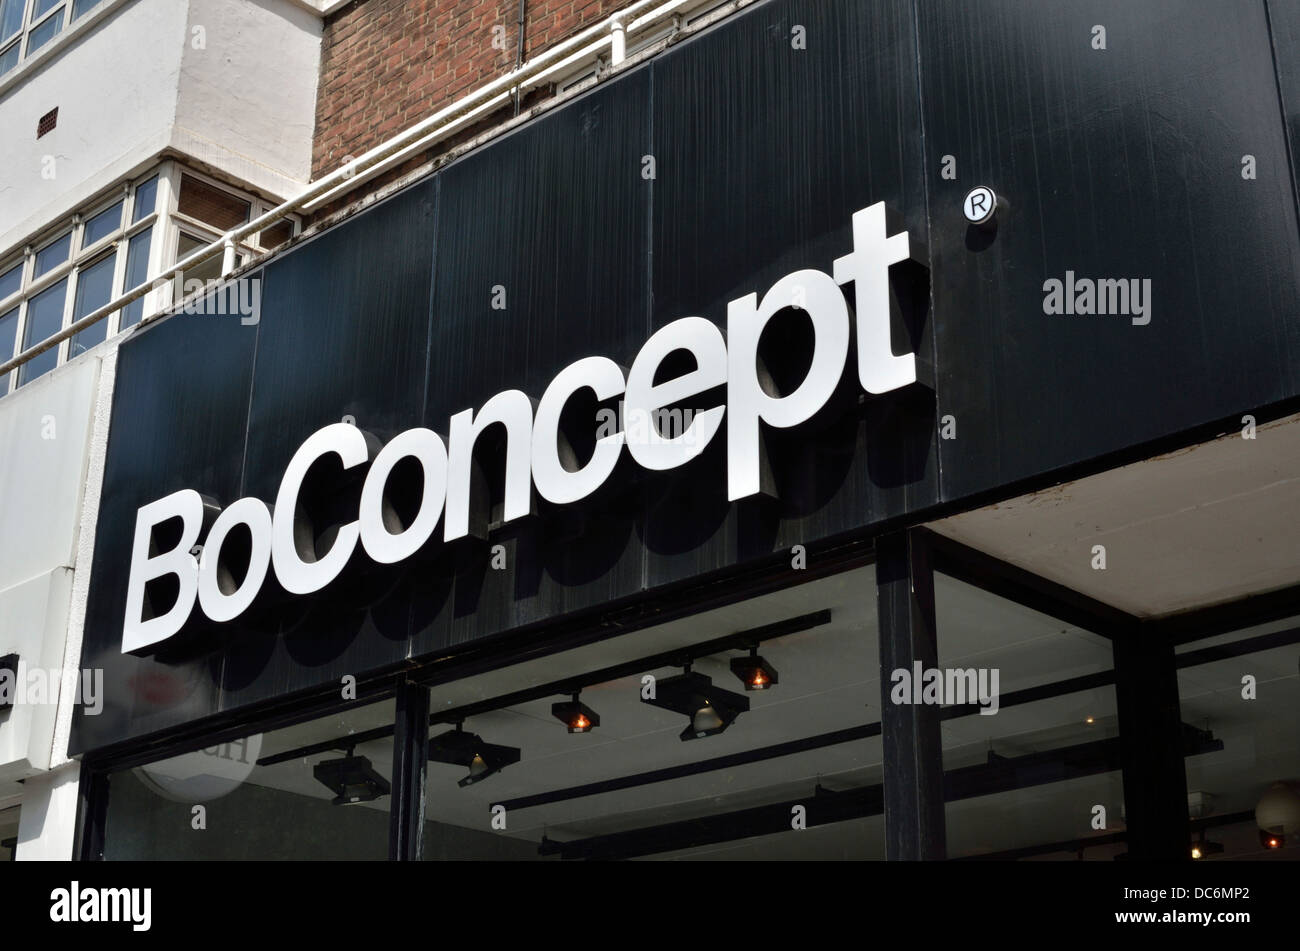 Logo Boconcept Boconcept Furniture Retailer Sign Logo Outside A Shop In Tottenham